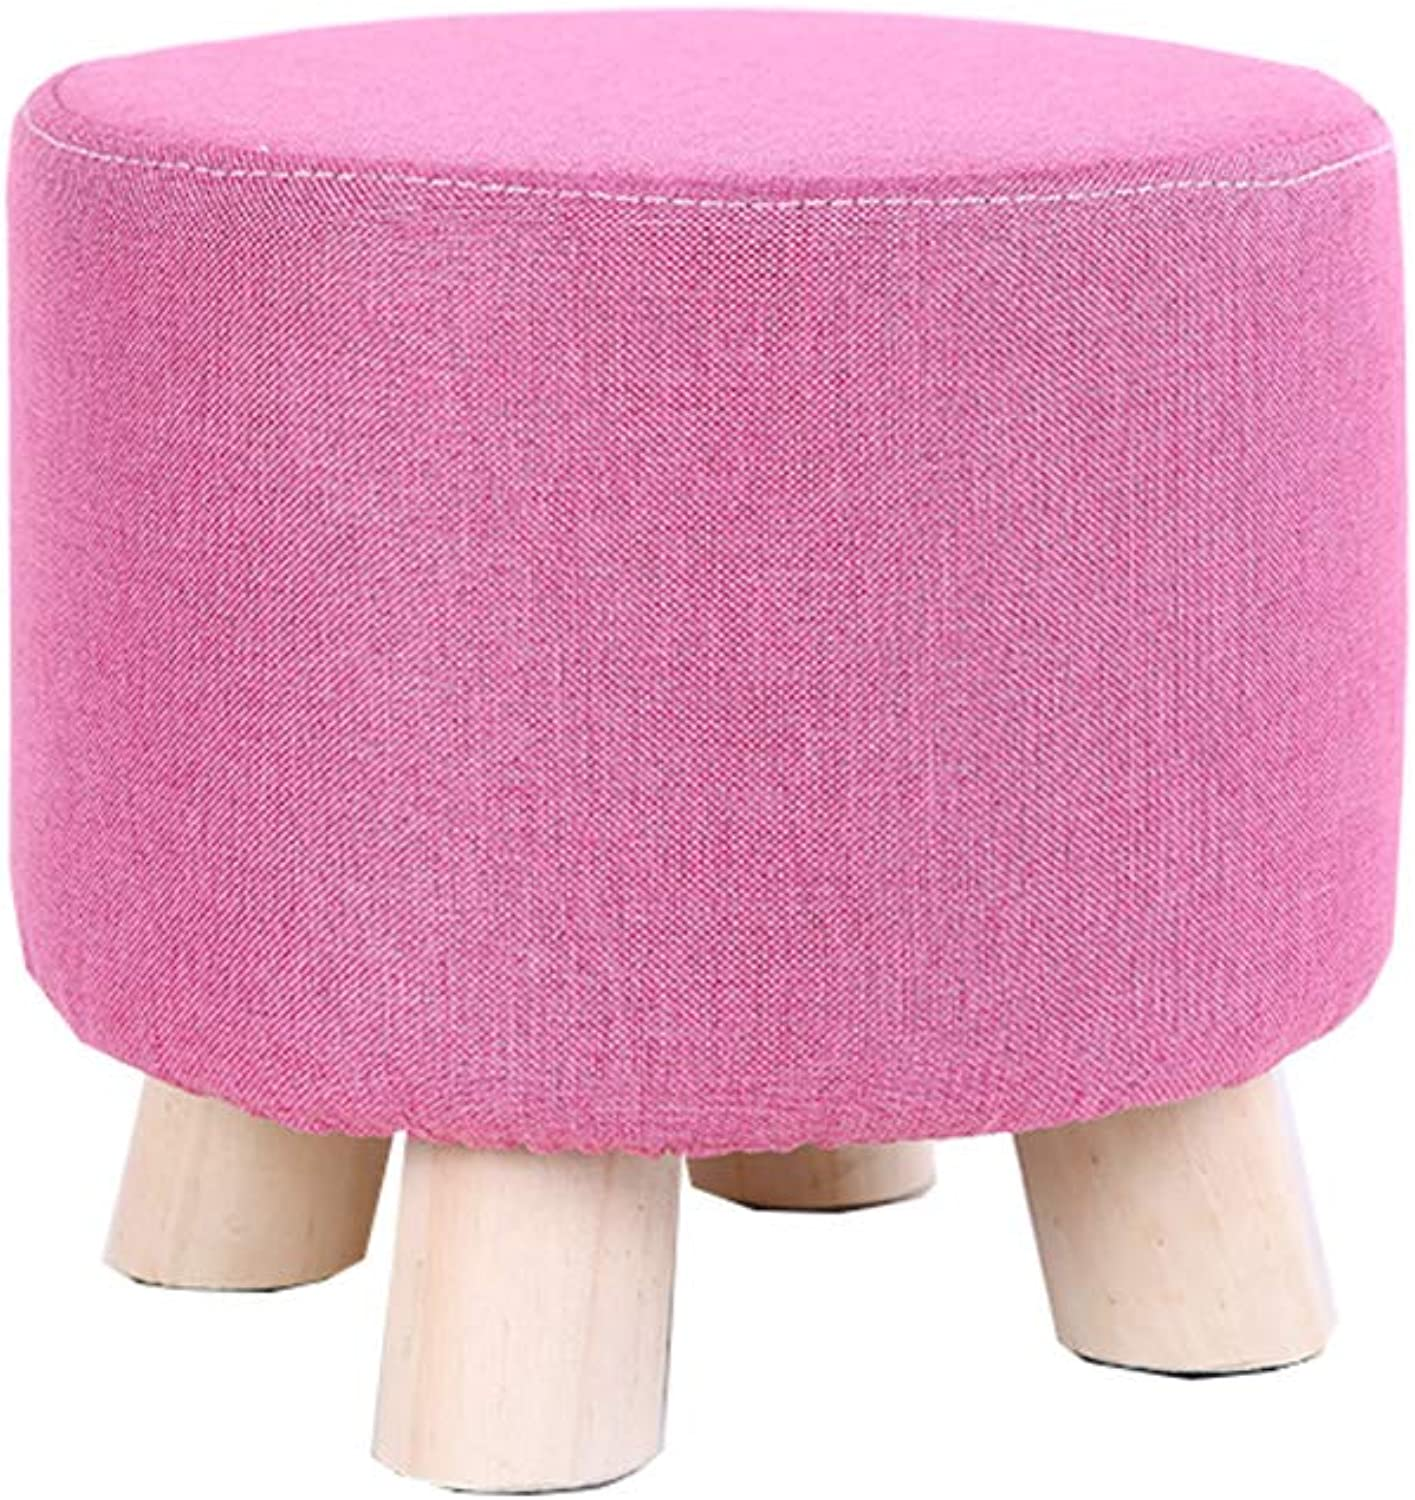 Solid Wood Round Footstool Thick Wood Small Osman shoes Bench Removable Multi-Functional Cloth Cover Economic Pine Legs (28cmx25cm)